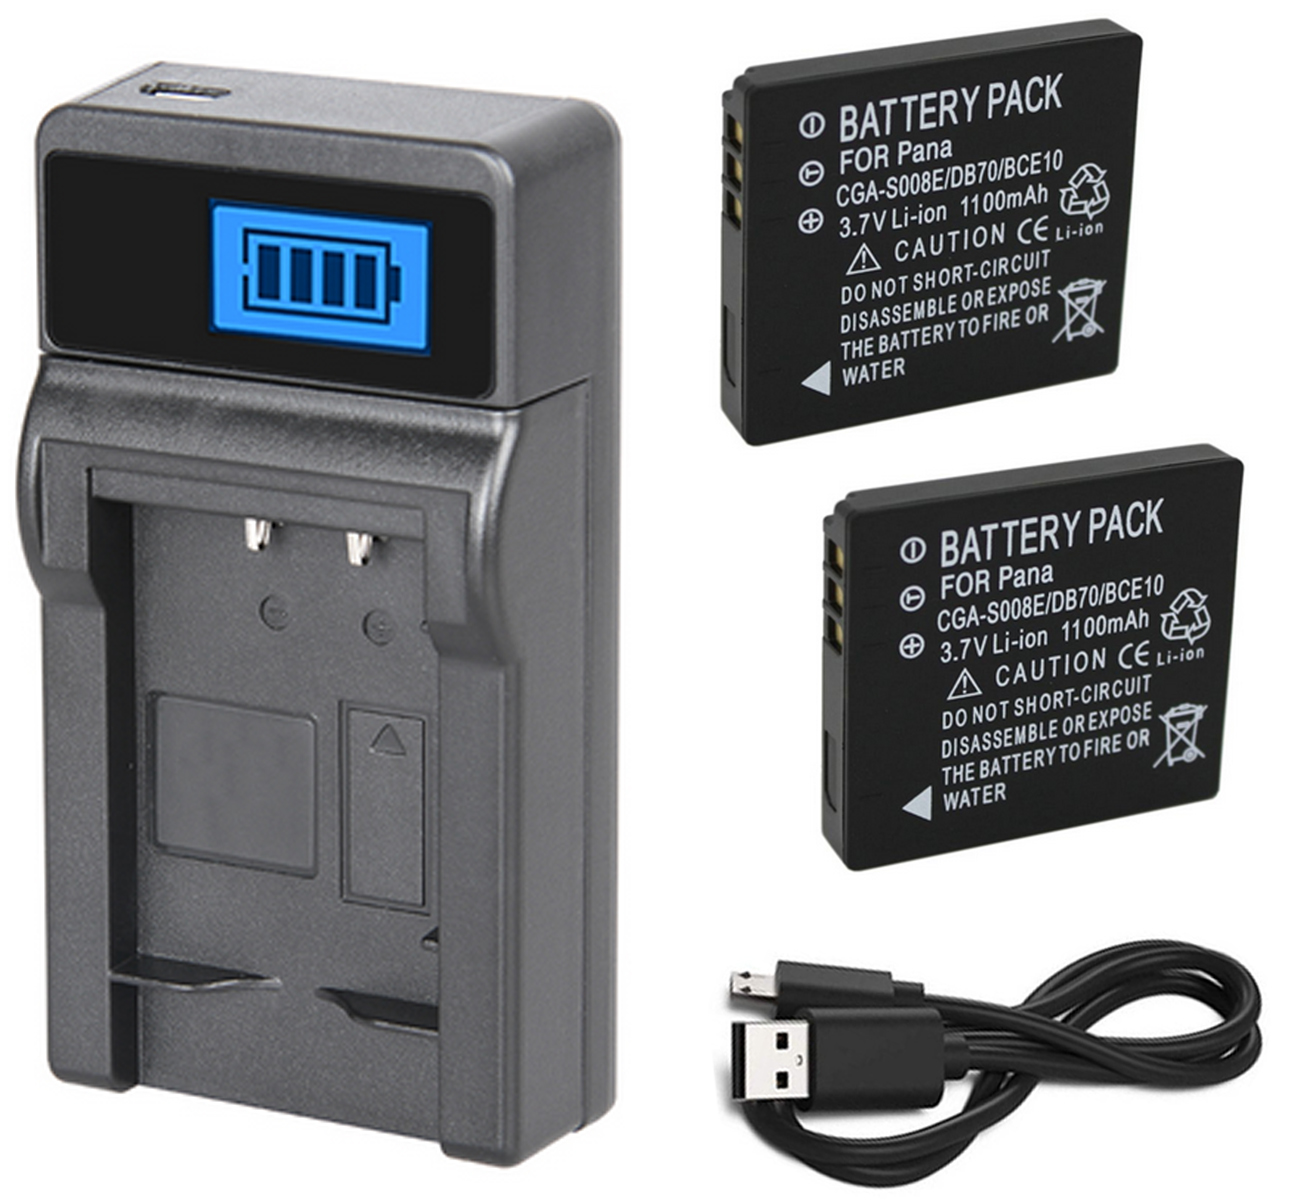 Battery (2-Pack) + Charger For Panasonic Lumix DMC-FX30, DMC-FX33, DMC-FX35, DMC-FX36, DMC-FX37, DMC-FX38 Digital Camera